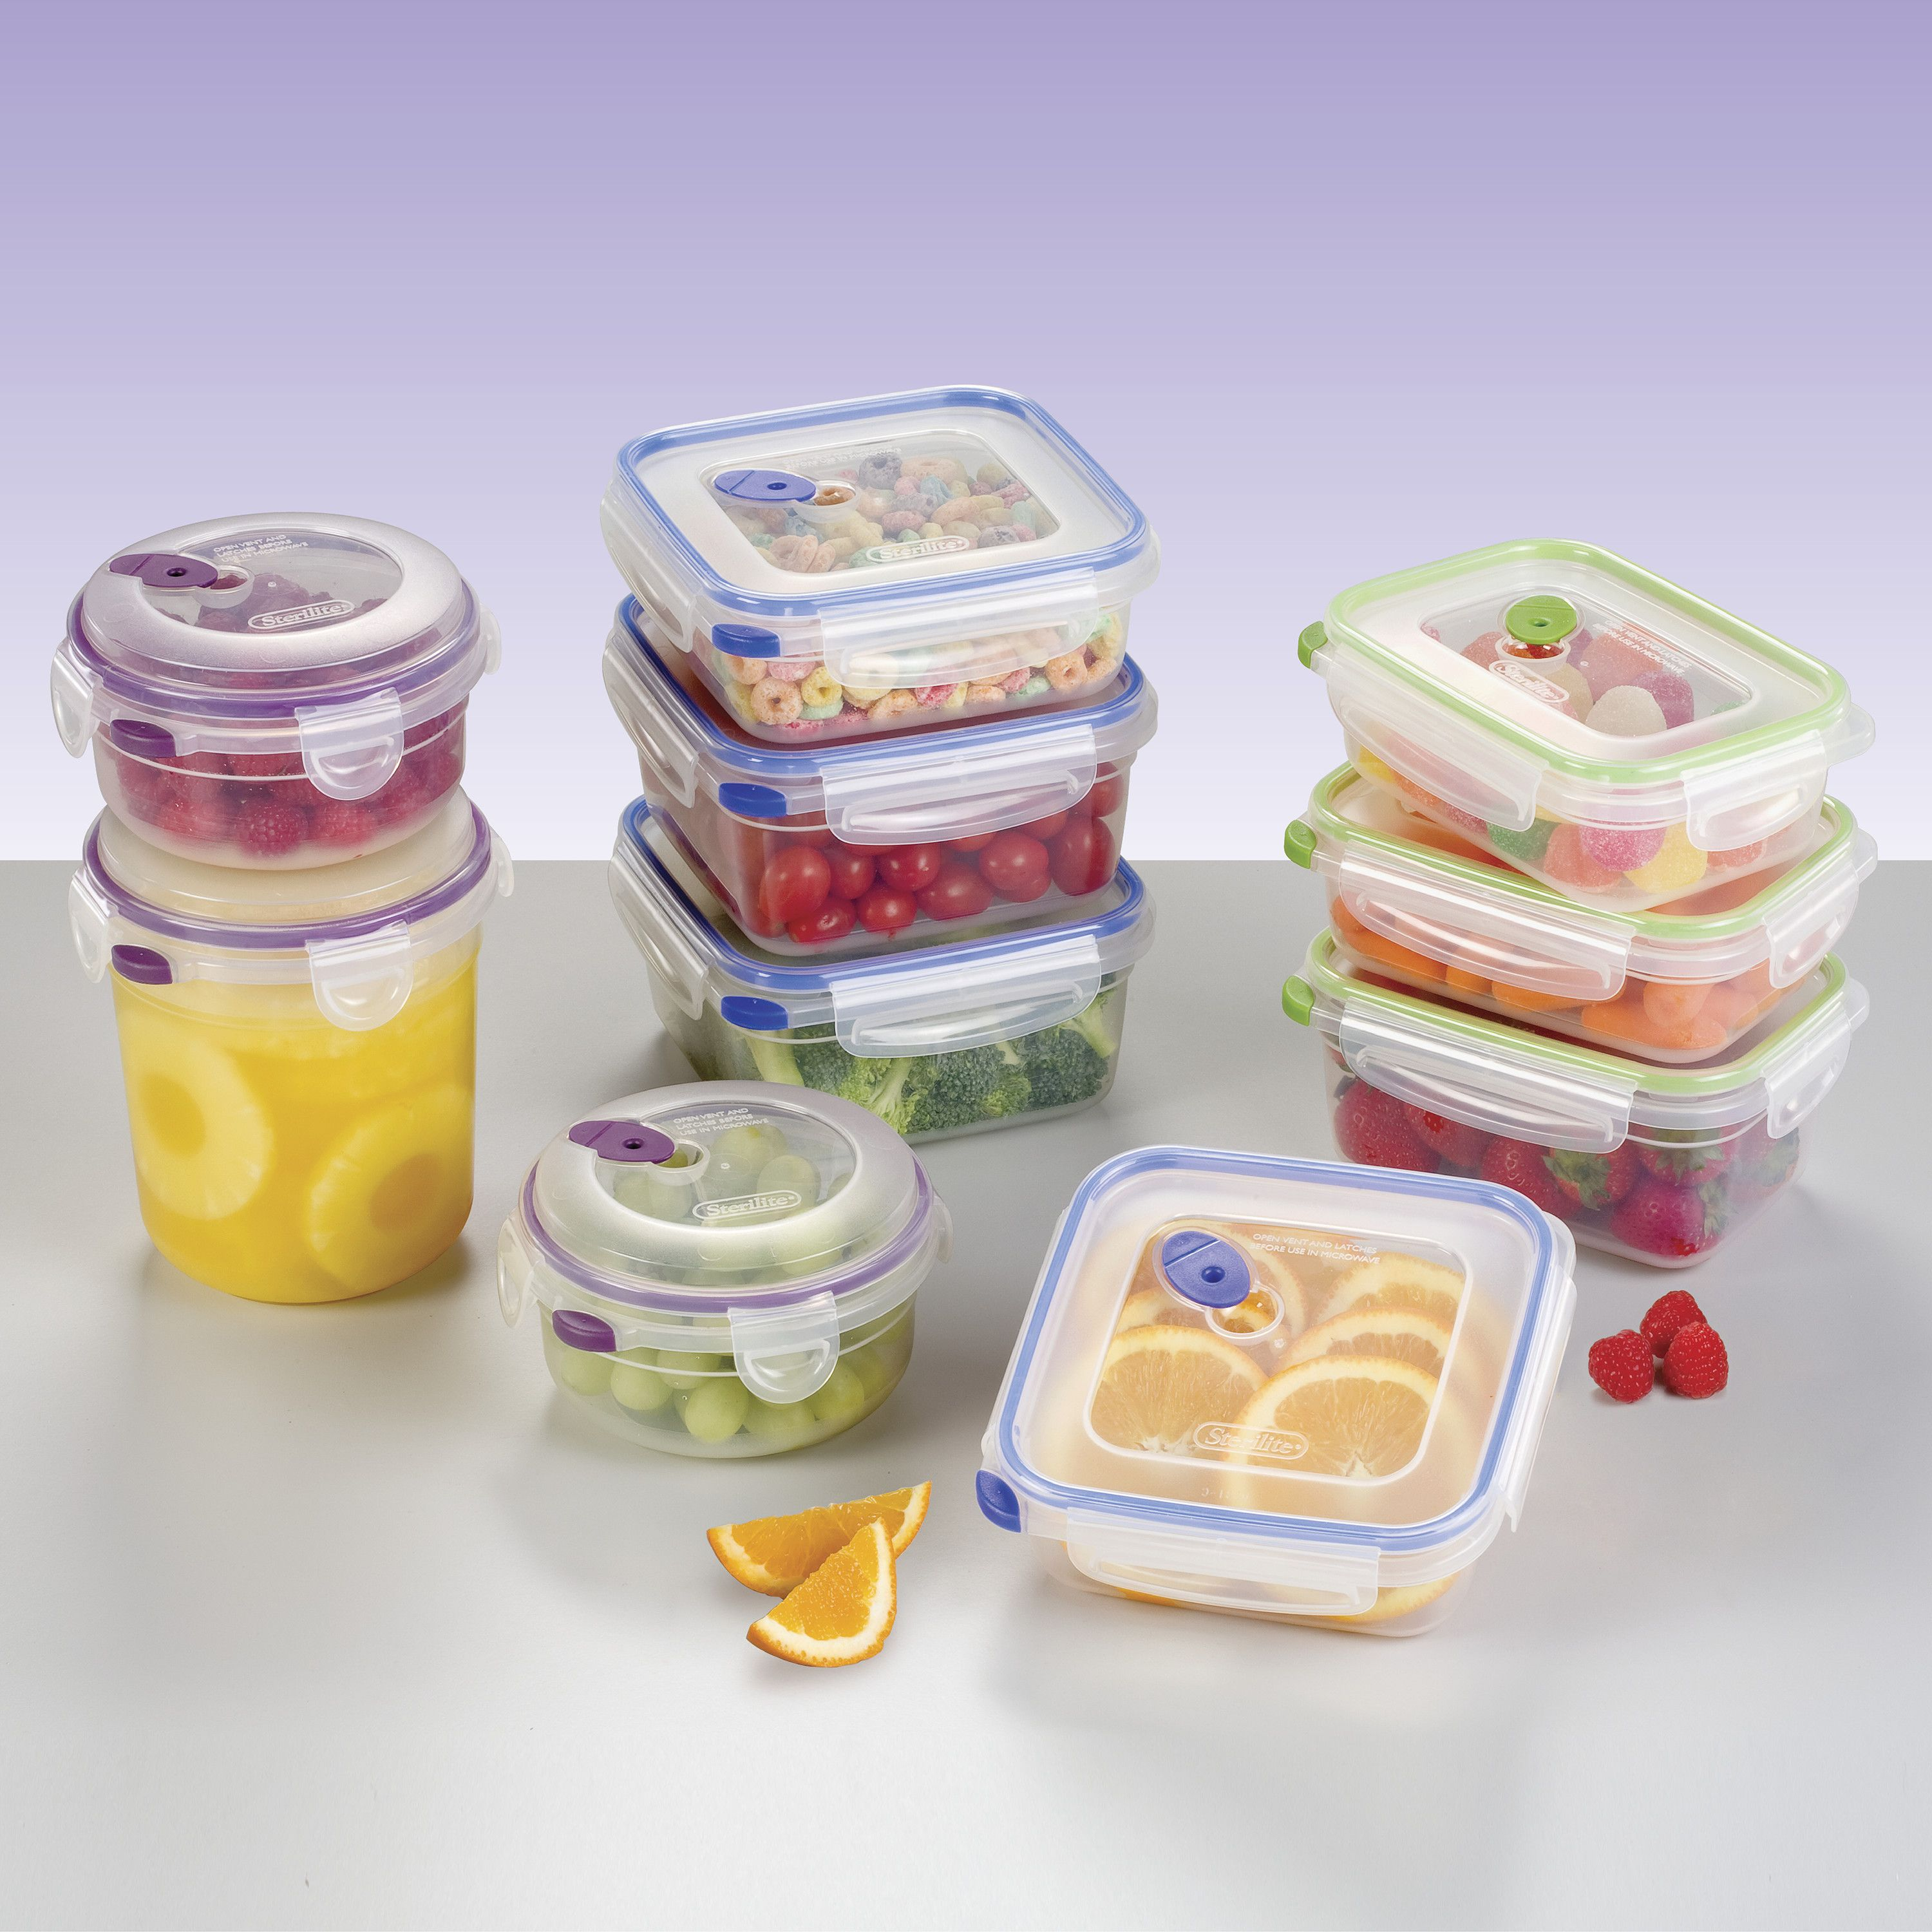 Walmart Food Storage Container Sets 20 Pc From Just 12